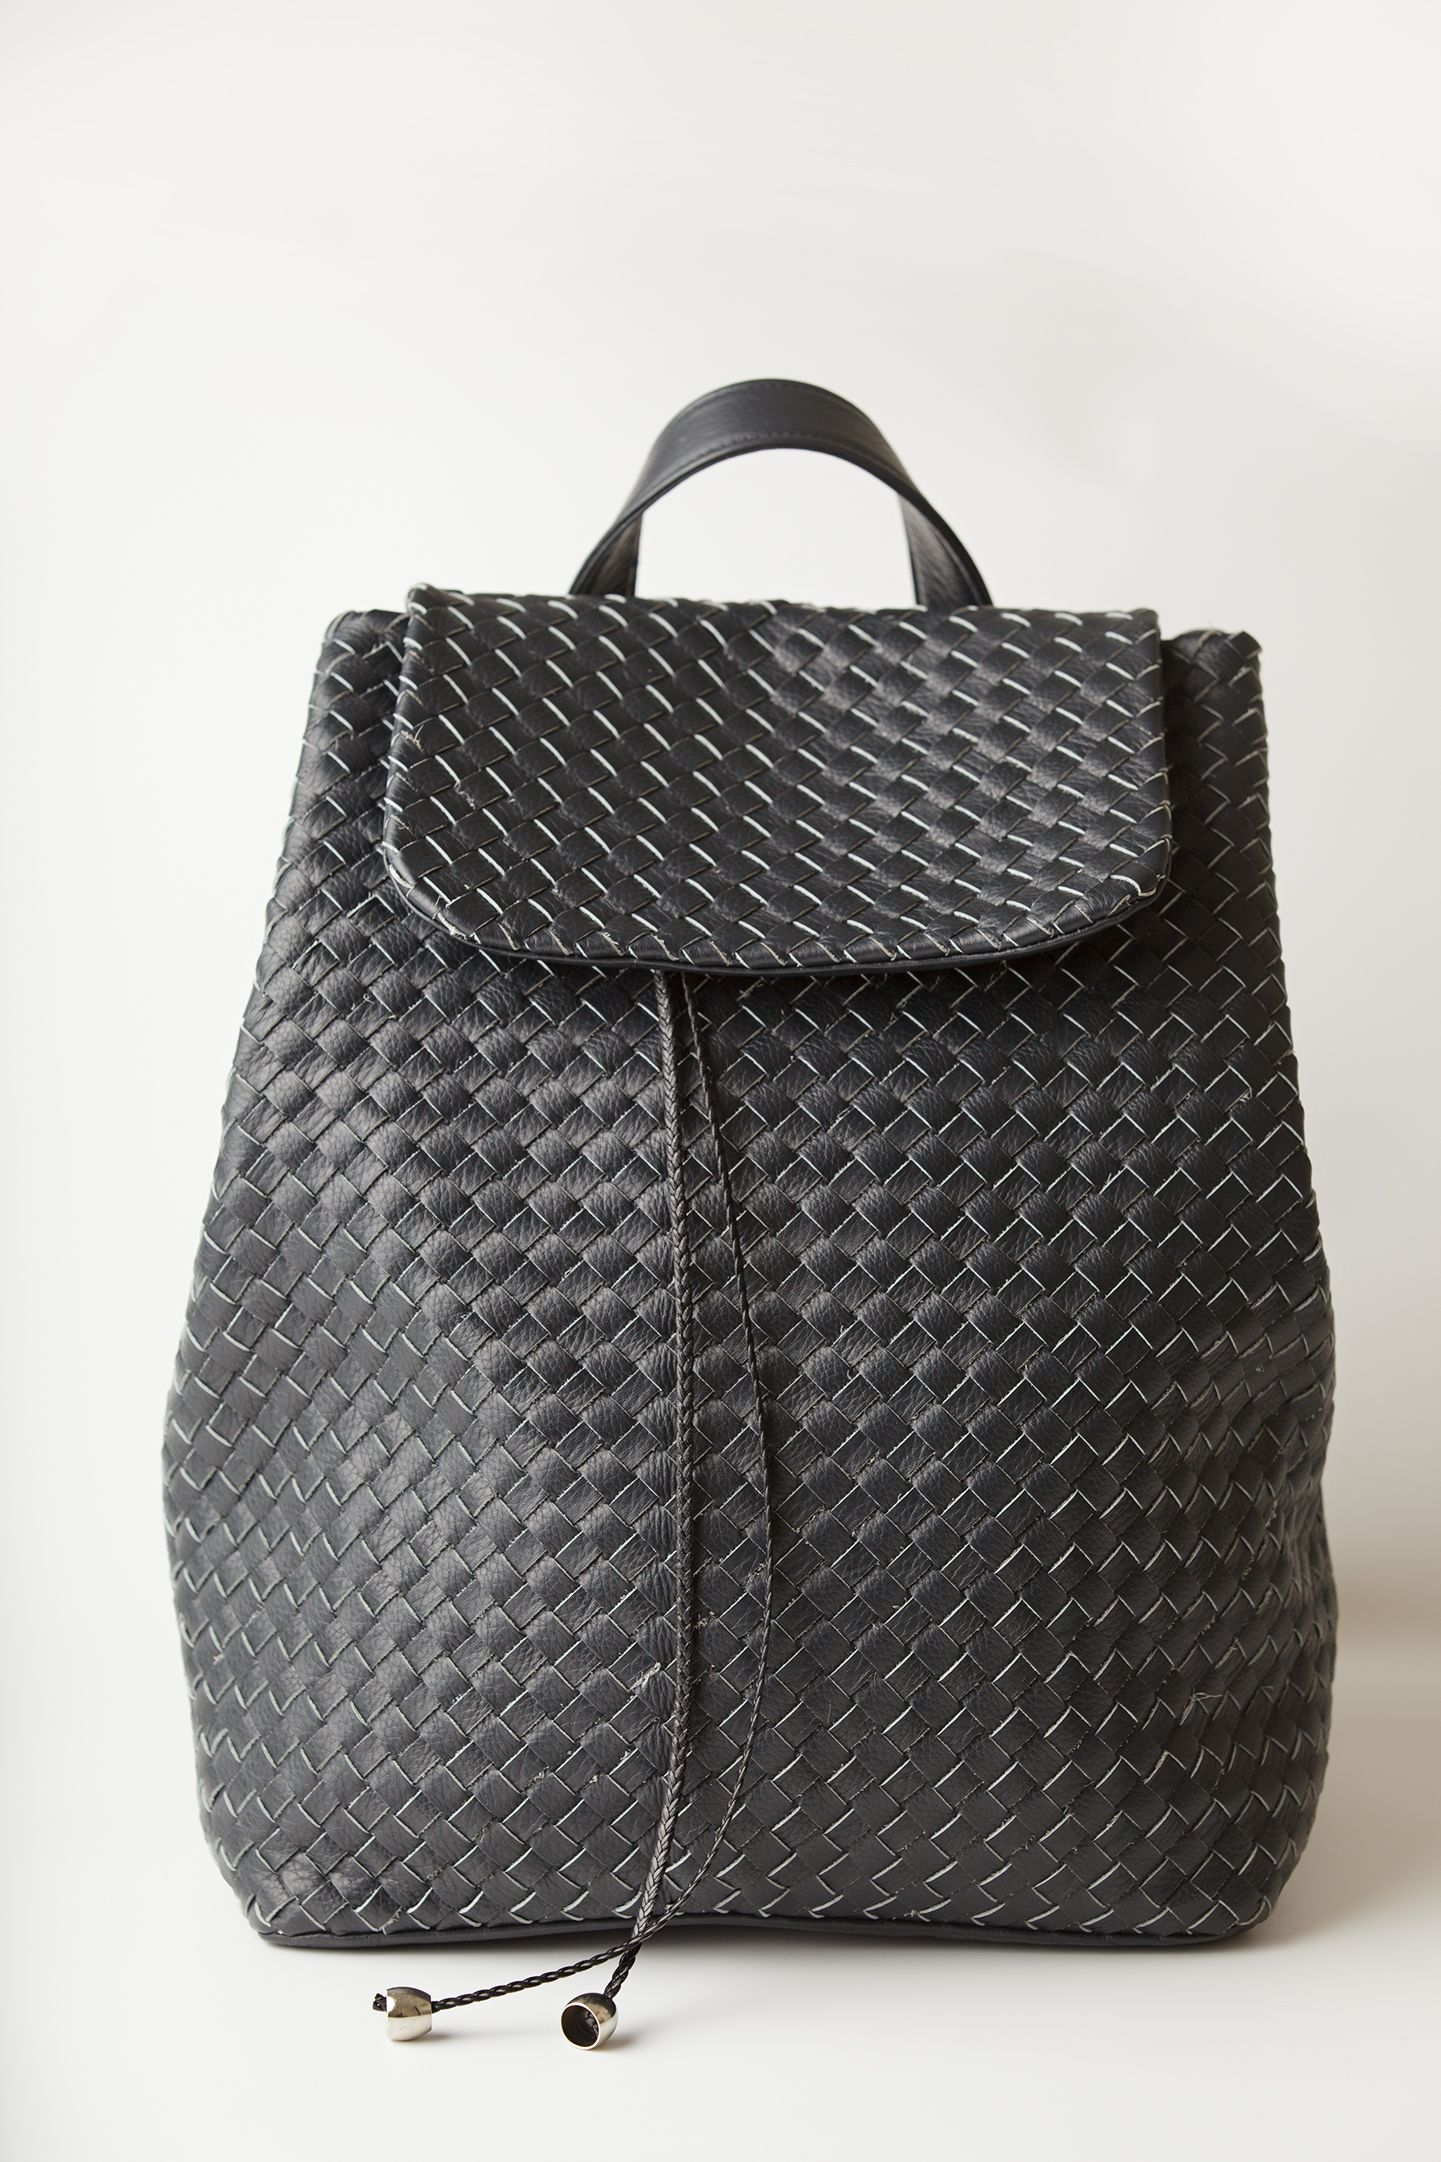 'Luisa' - our gorgeous new navy blue backpack!